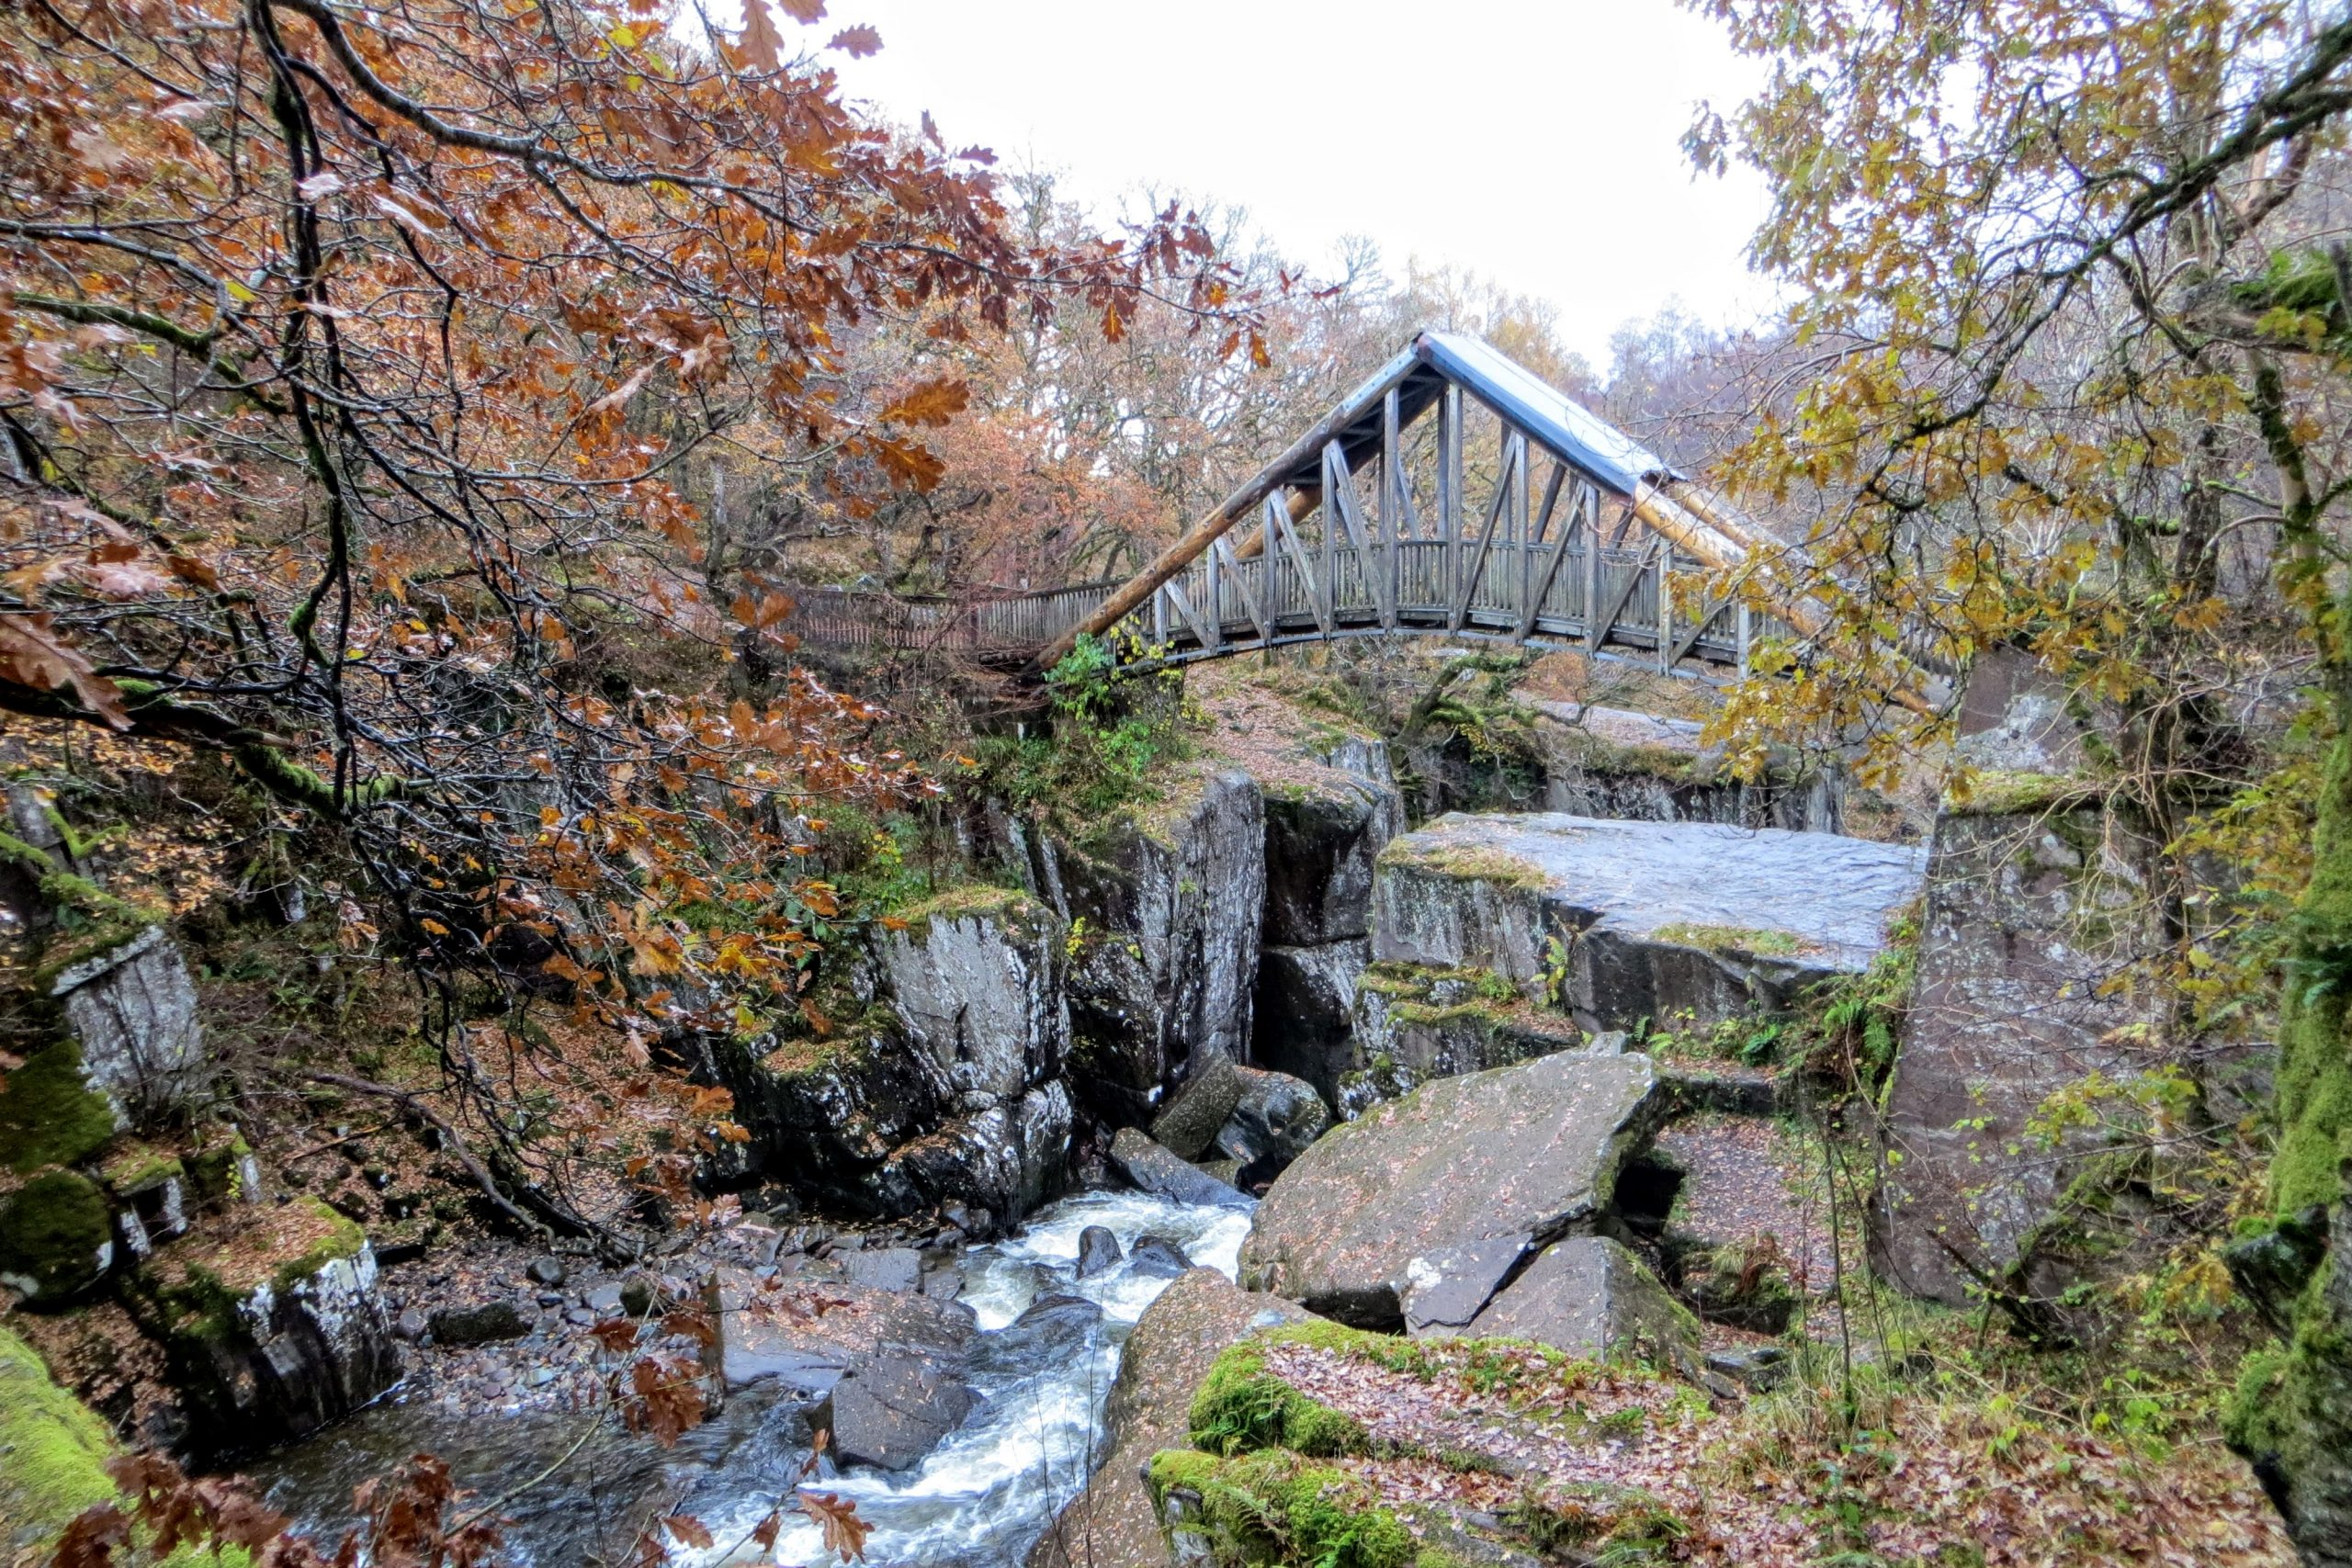 Scotland in Autumn - Bridge